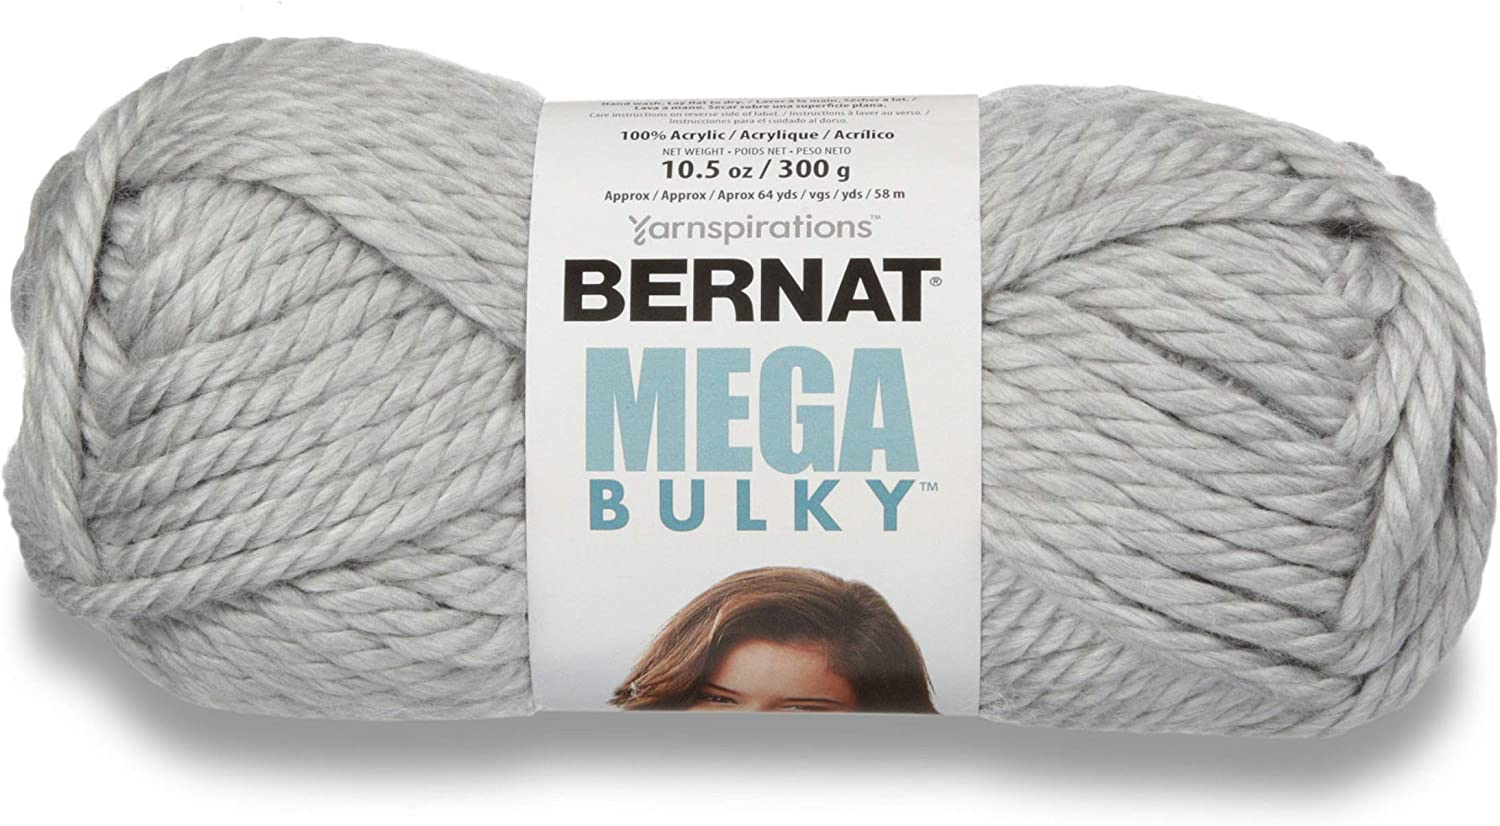 Bernat Mega Bulky Yarn, 10.5 oz, Gauge 7 Jumbo, 100% Acrylic, Light Grey Heather